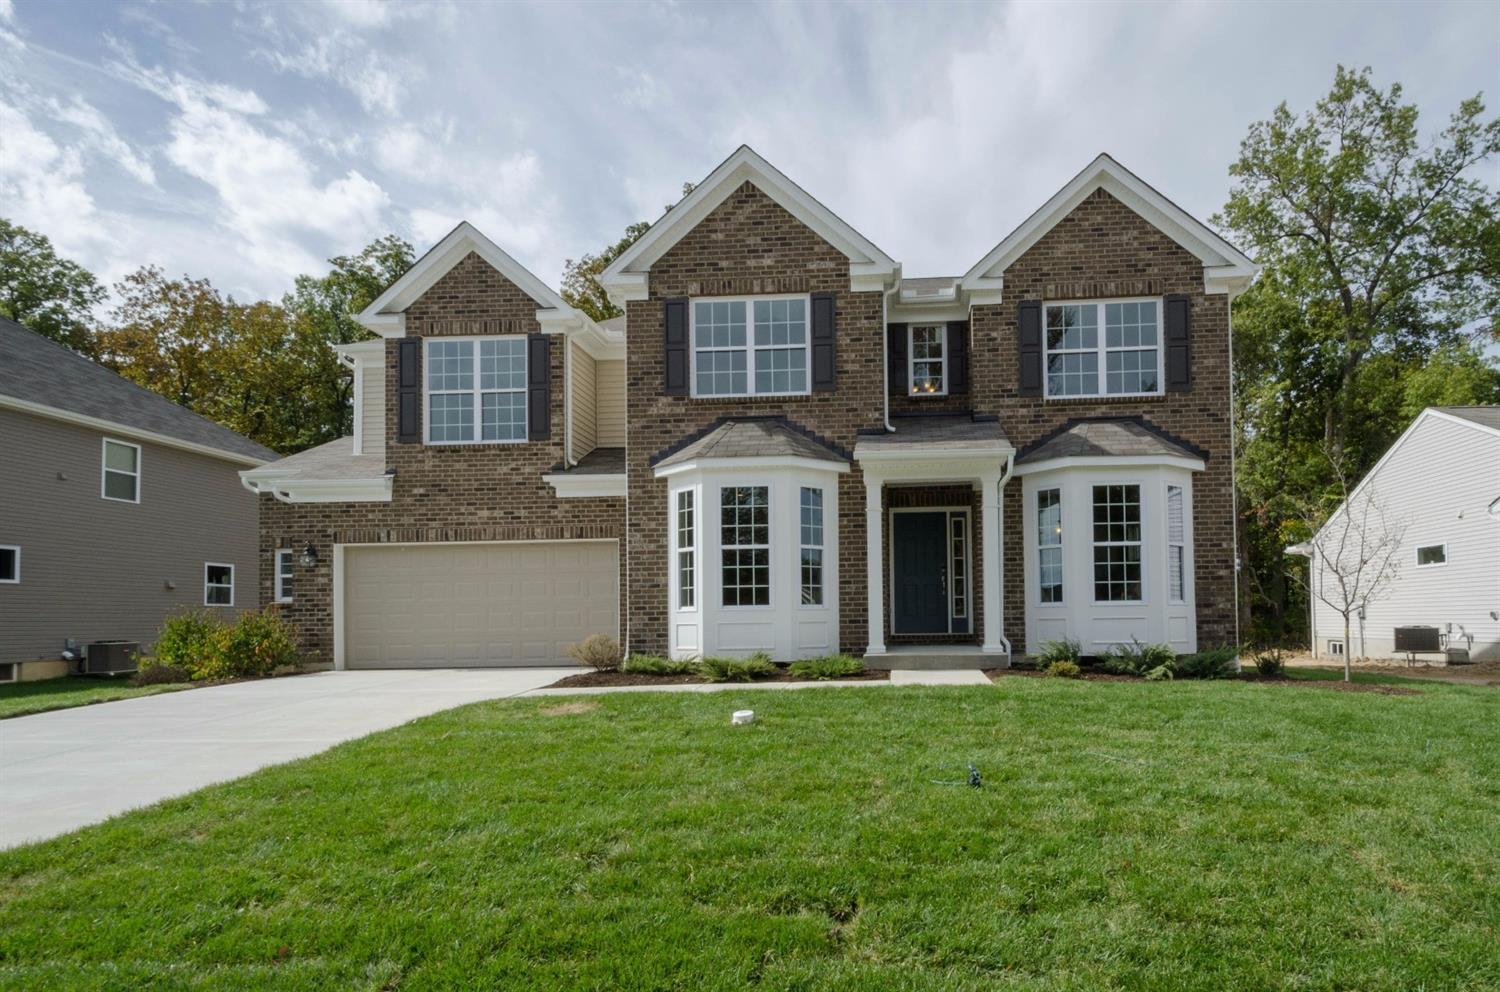 4157 Greenfield Ct, 131 Union Twp. (Clermont), OH